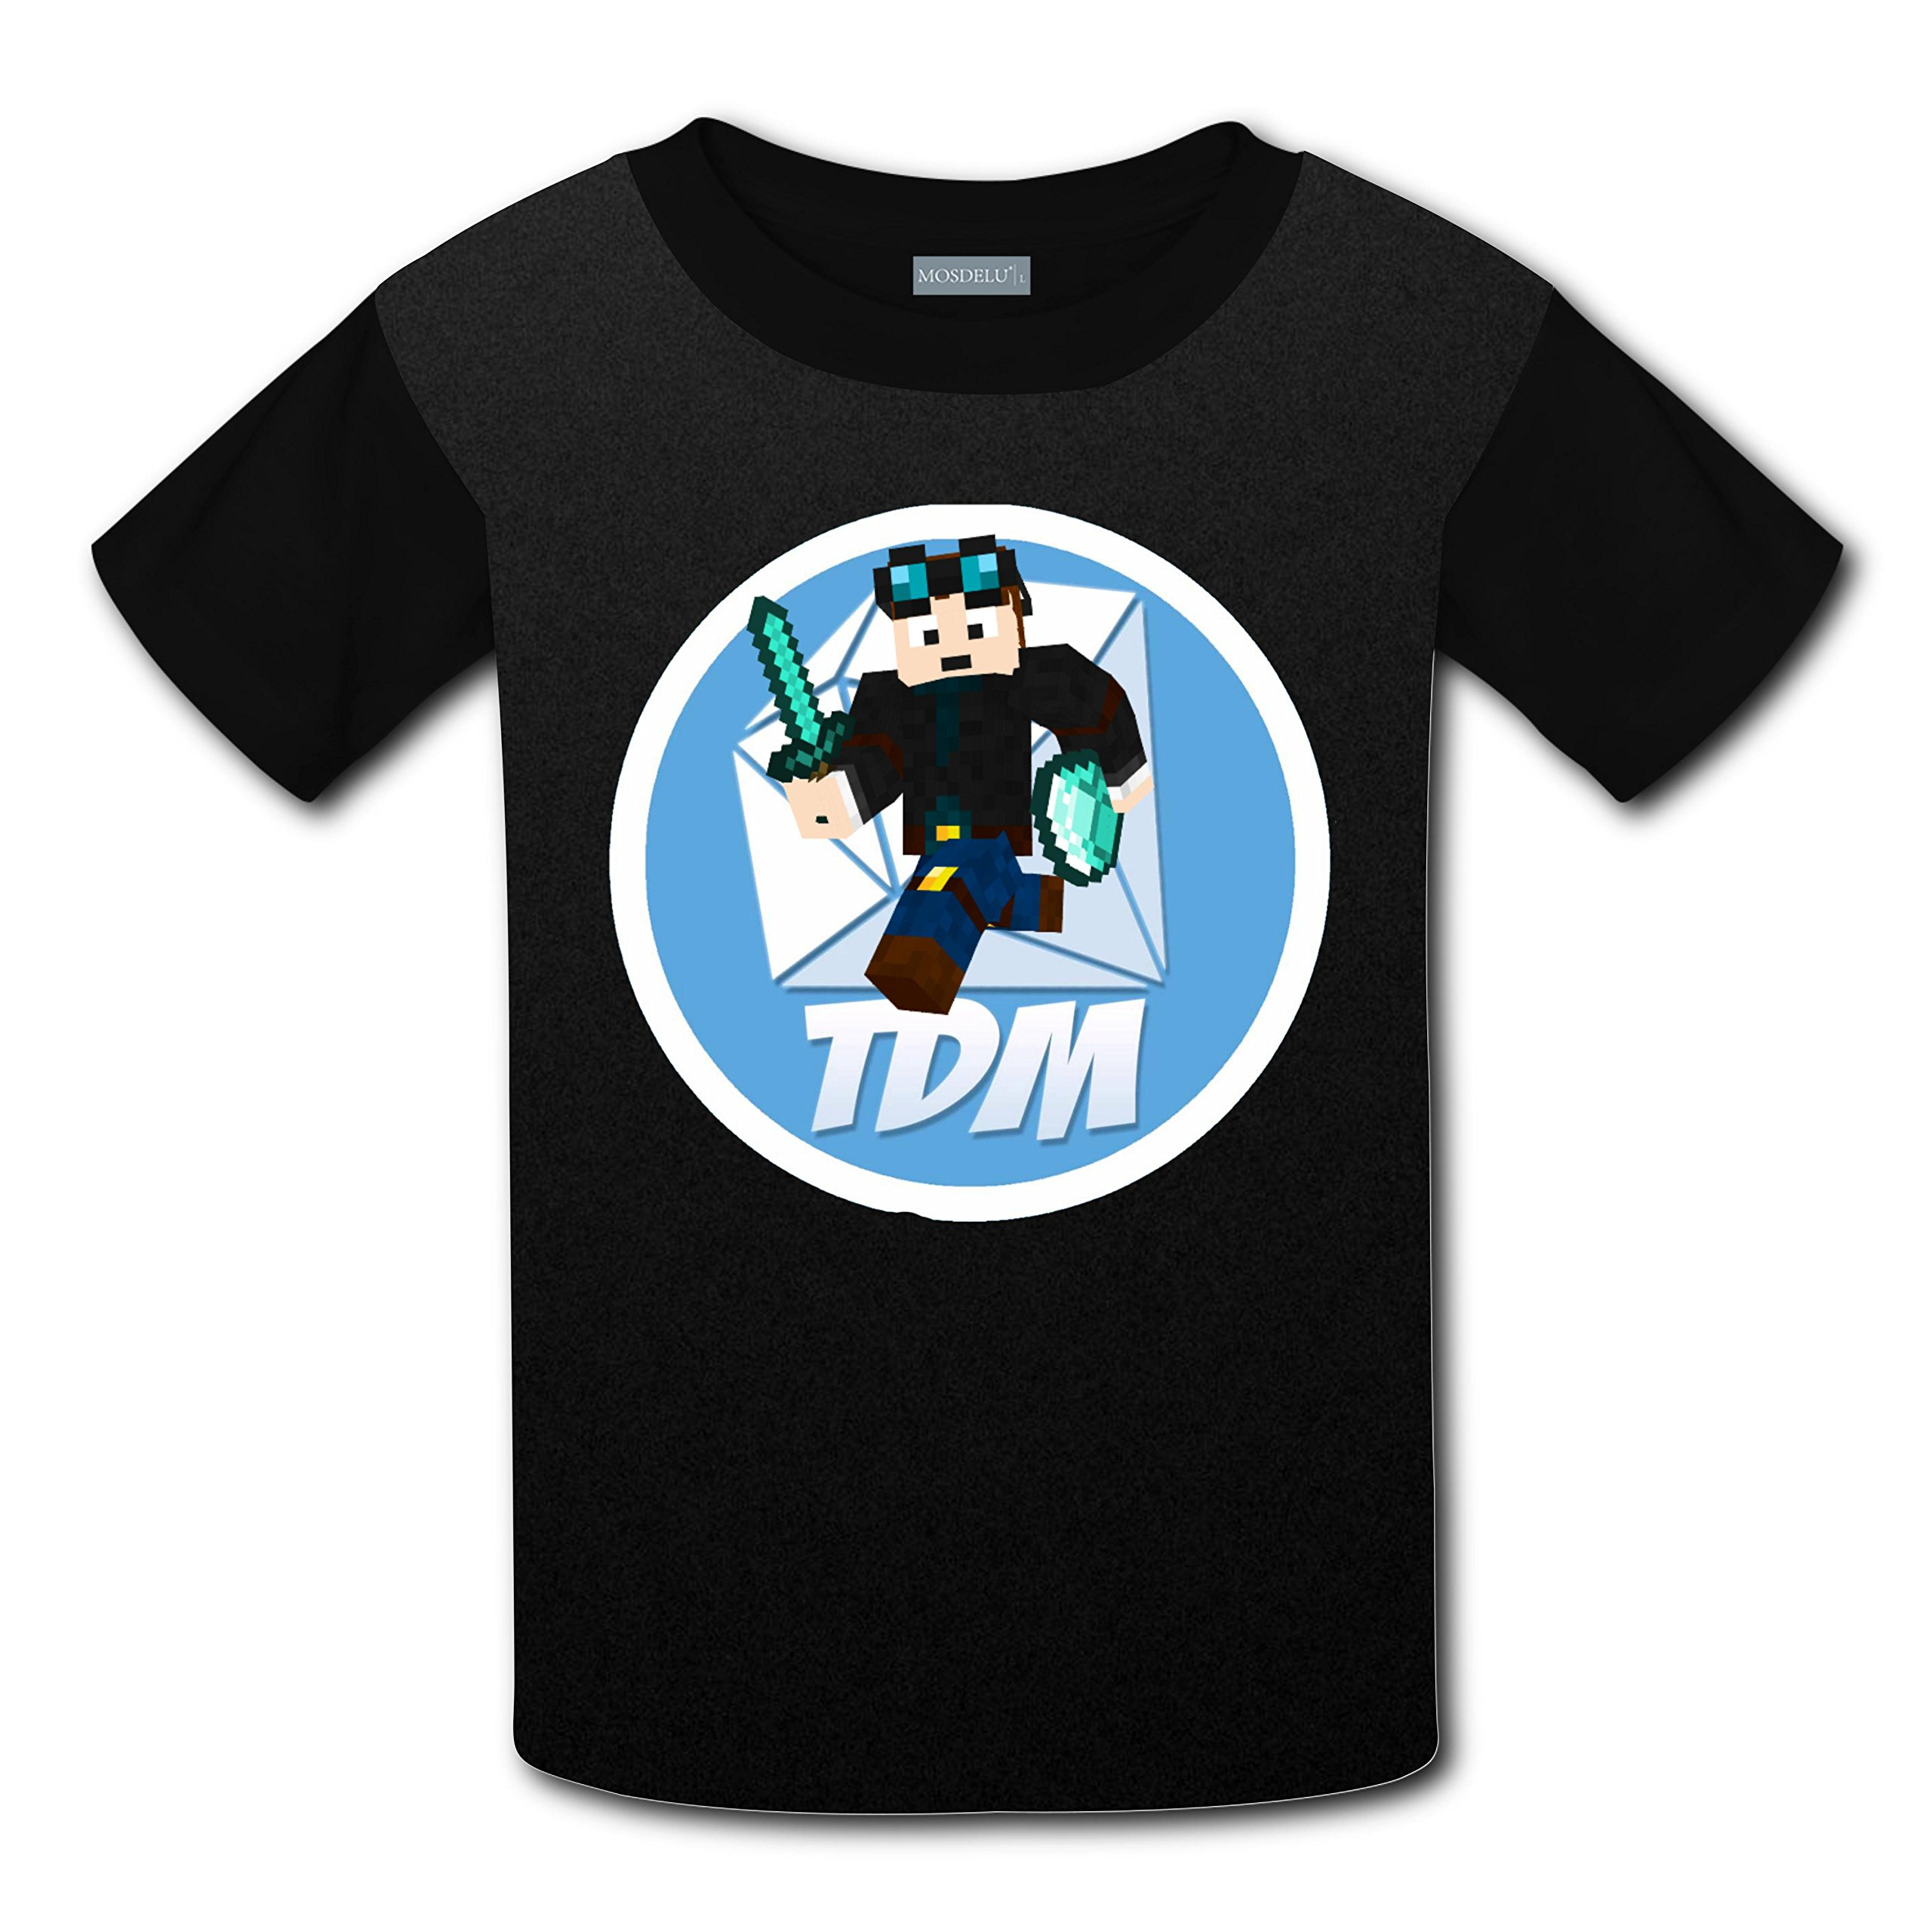 The Diamond Minecart TDM Logo 3D Printed Short Sleeve Crew Neck T-Shirt For Boys by BIBIVE